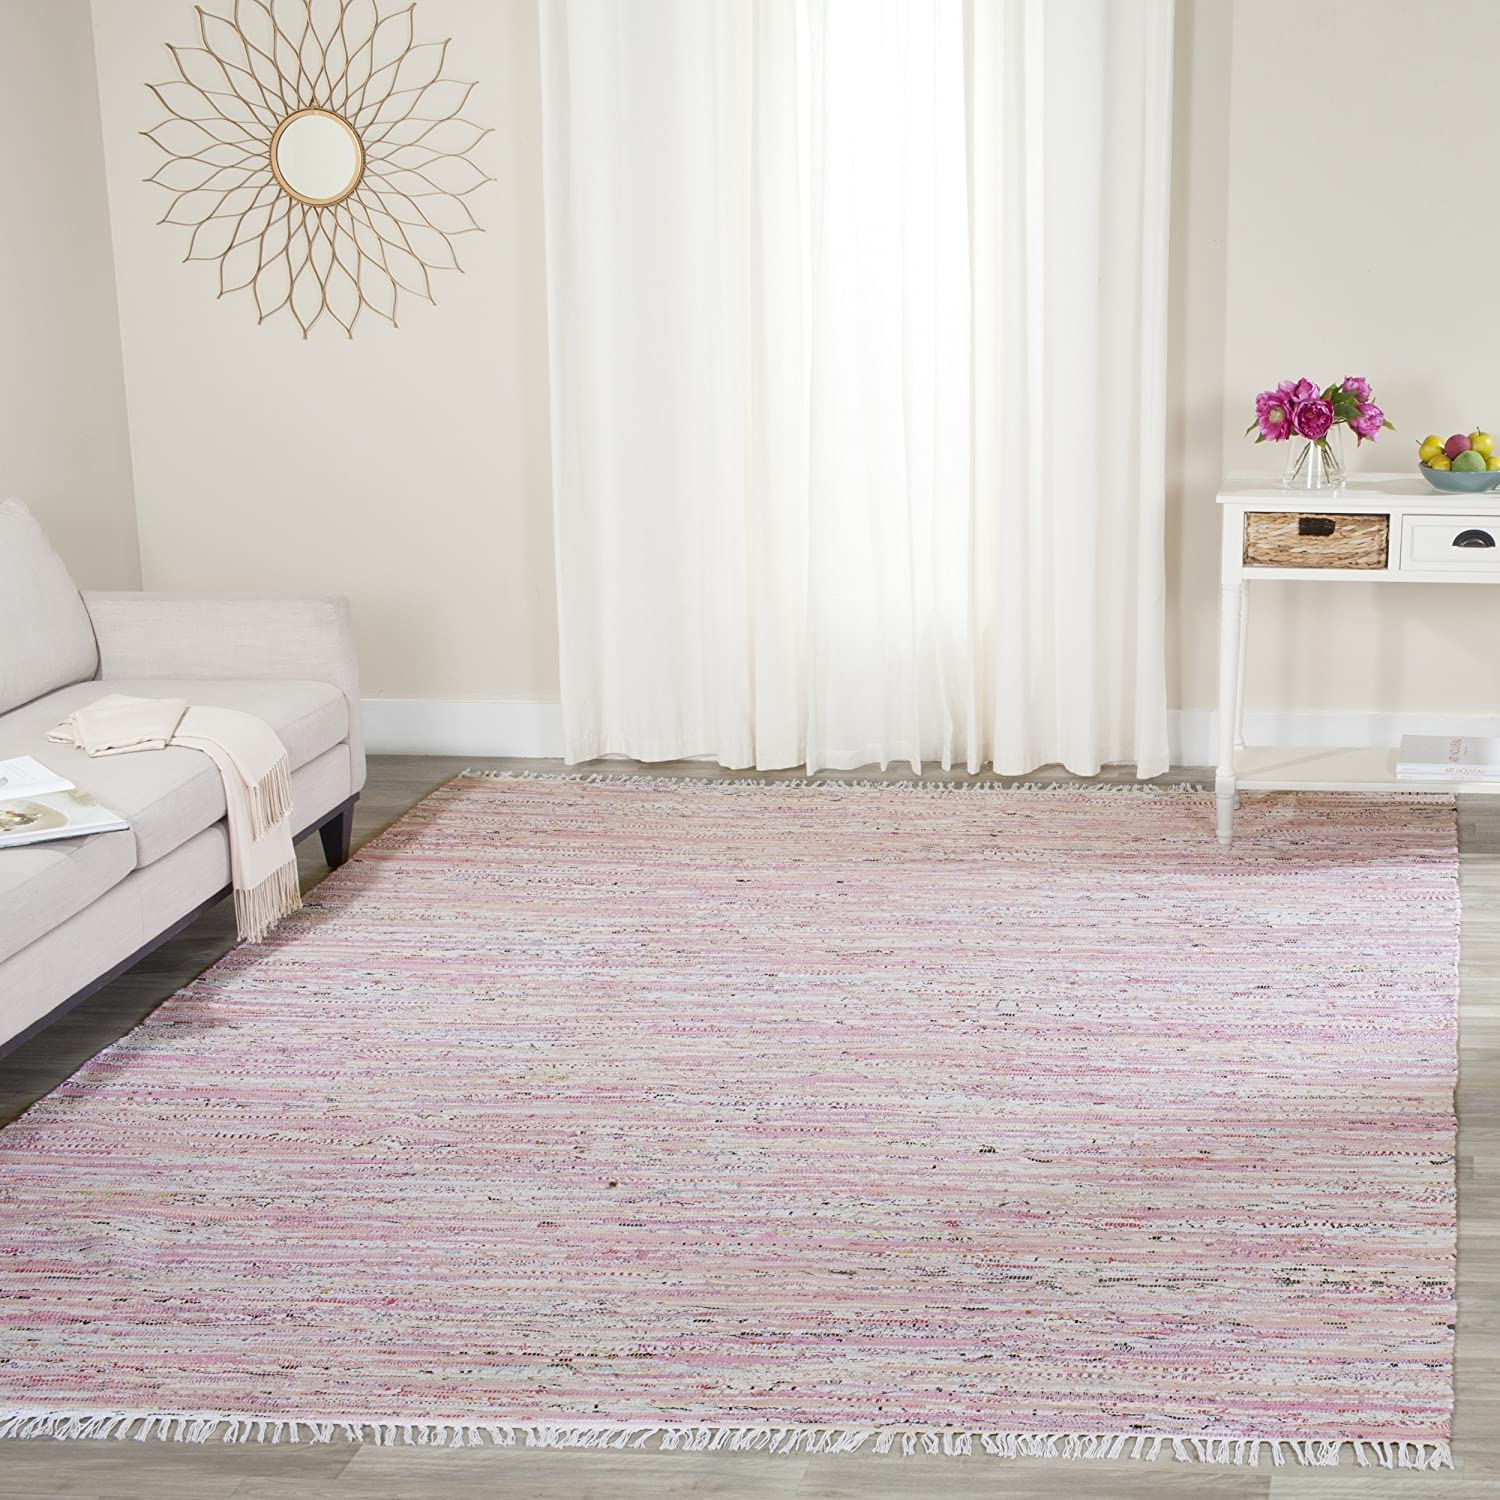 Pink Area Rug.Alameda Hot Pink 5 Ft X 8 Ft Indoor Area Rug. Pink ...